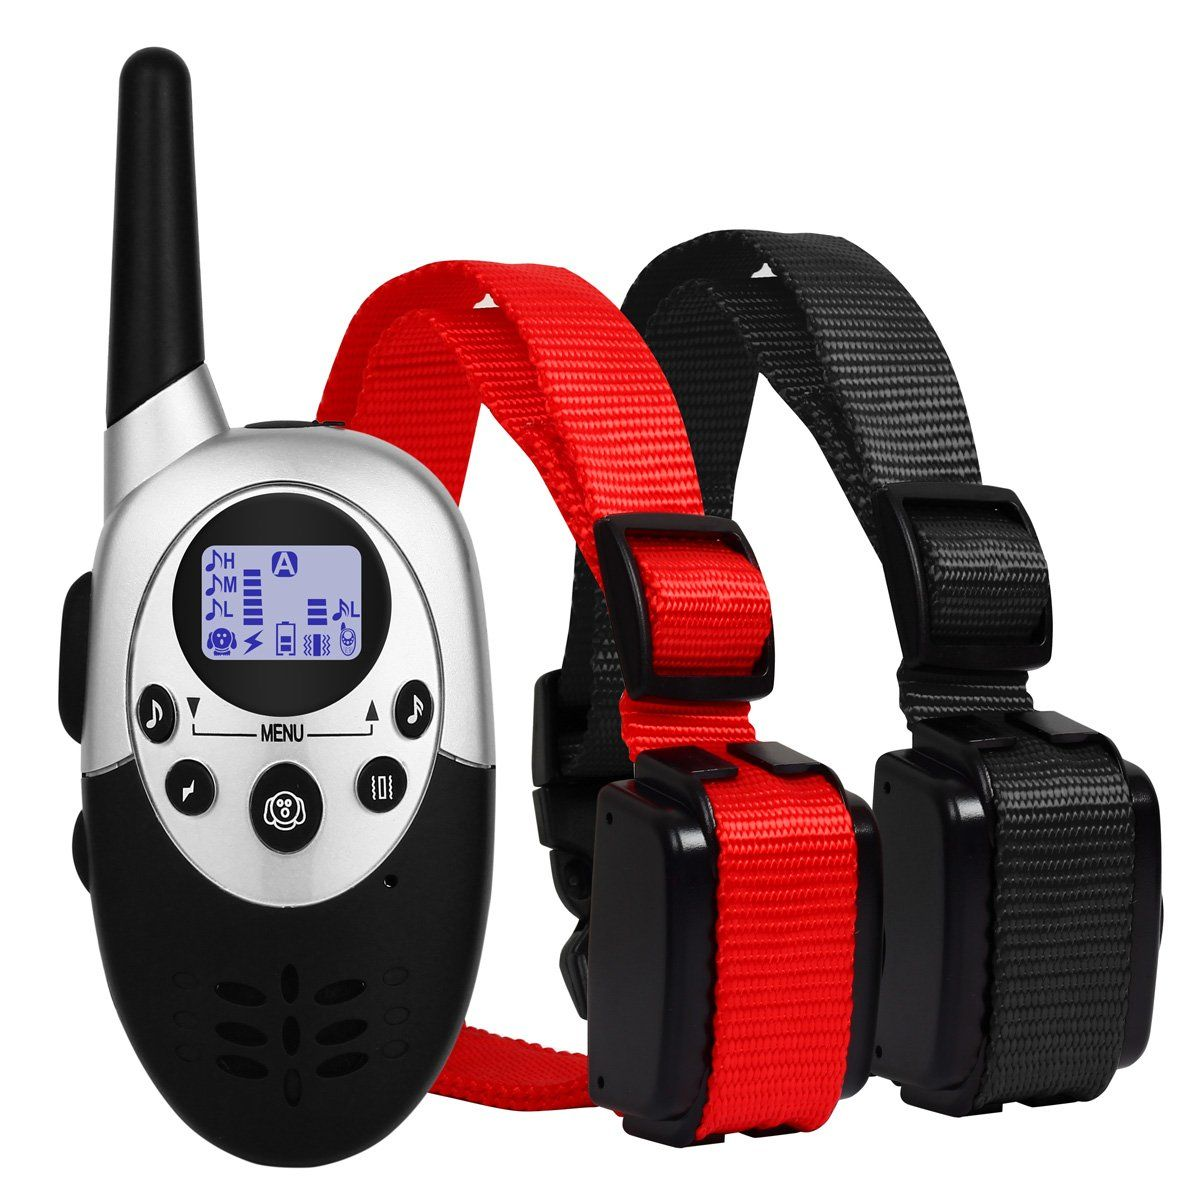 Dog Shock Training Collar For 2 Dogs 3000 Feet Long Range Remote